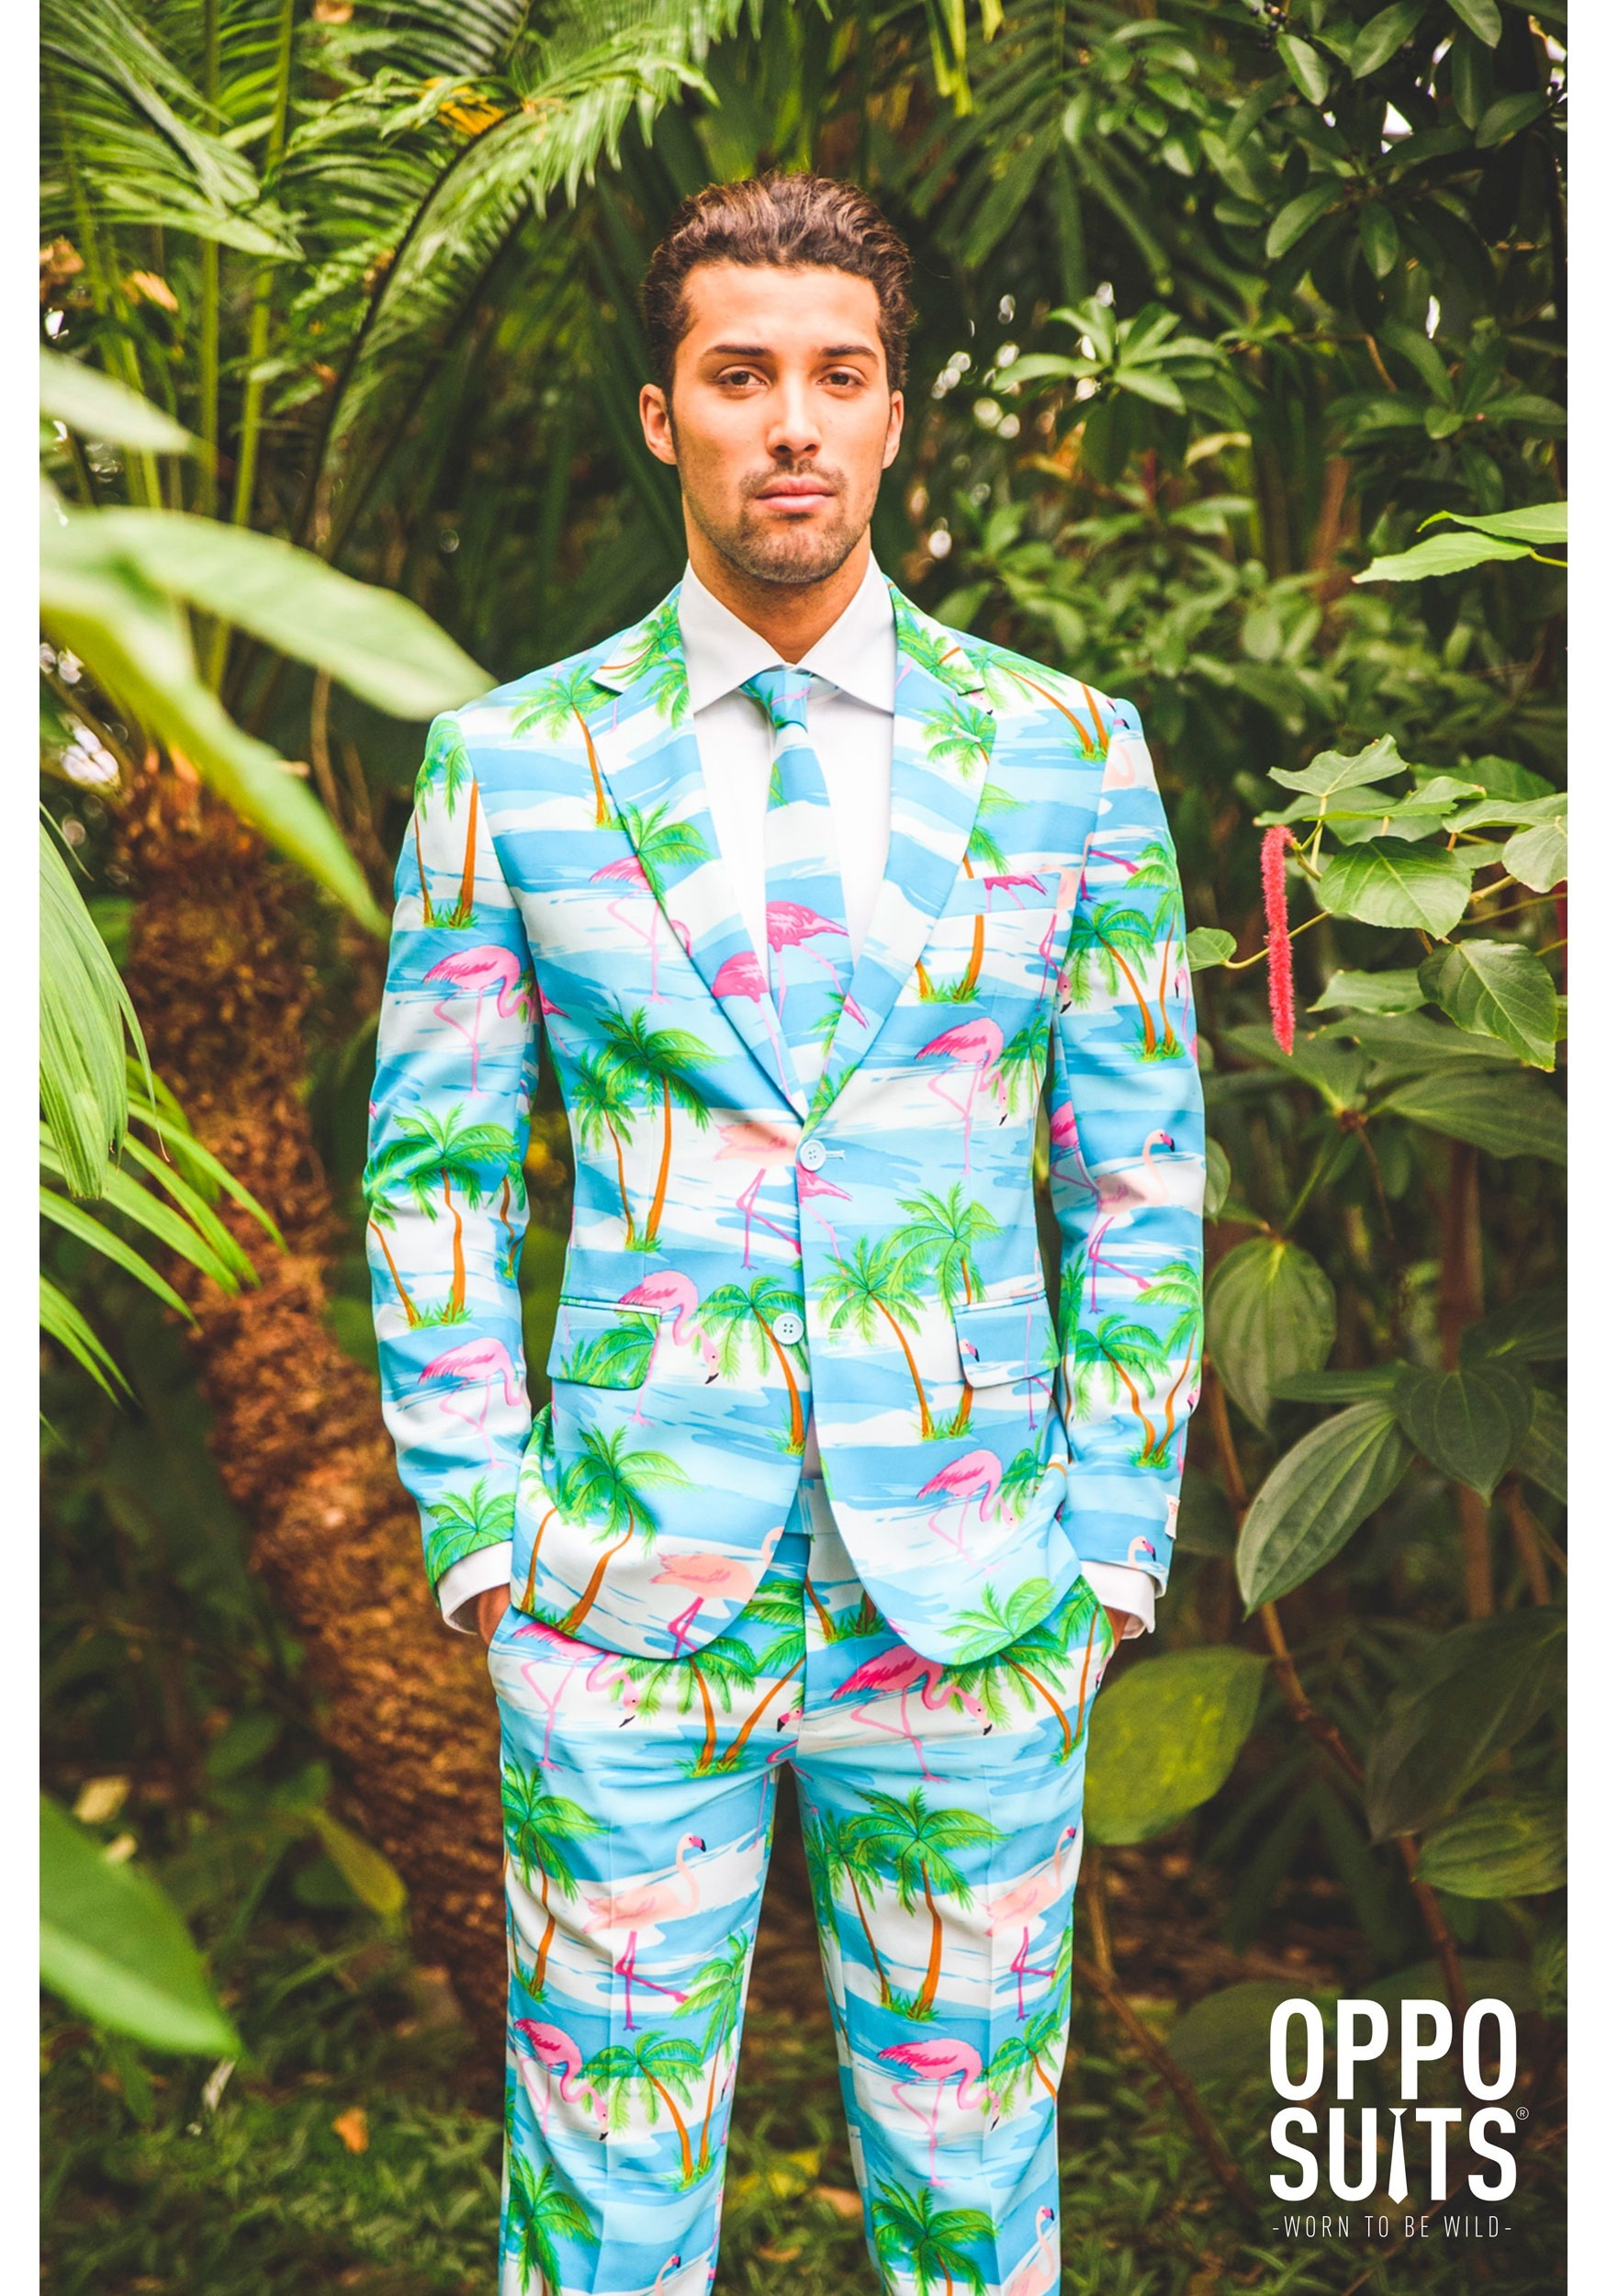 c49f95dadc99e4 Men's OppoSuits Flamingo Suit